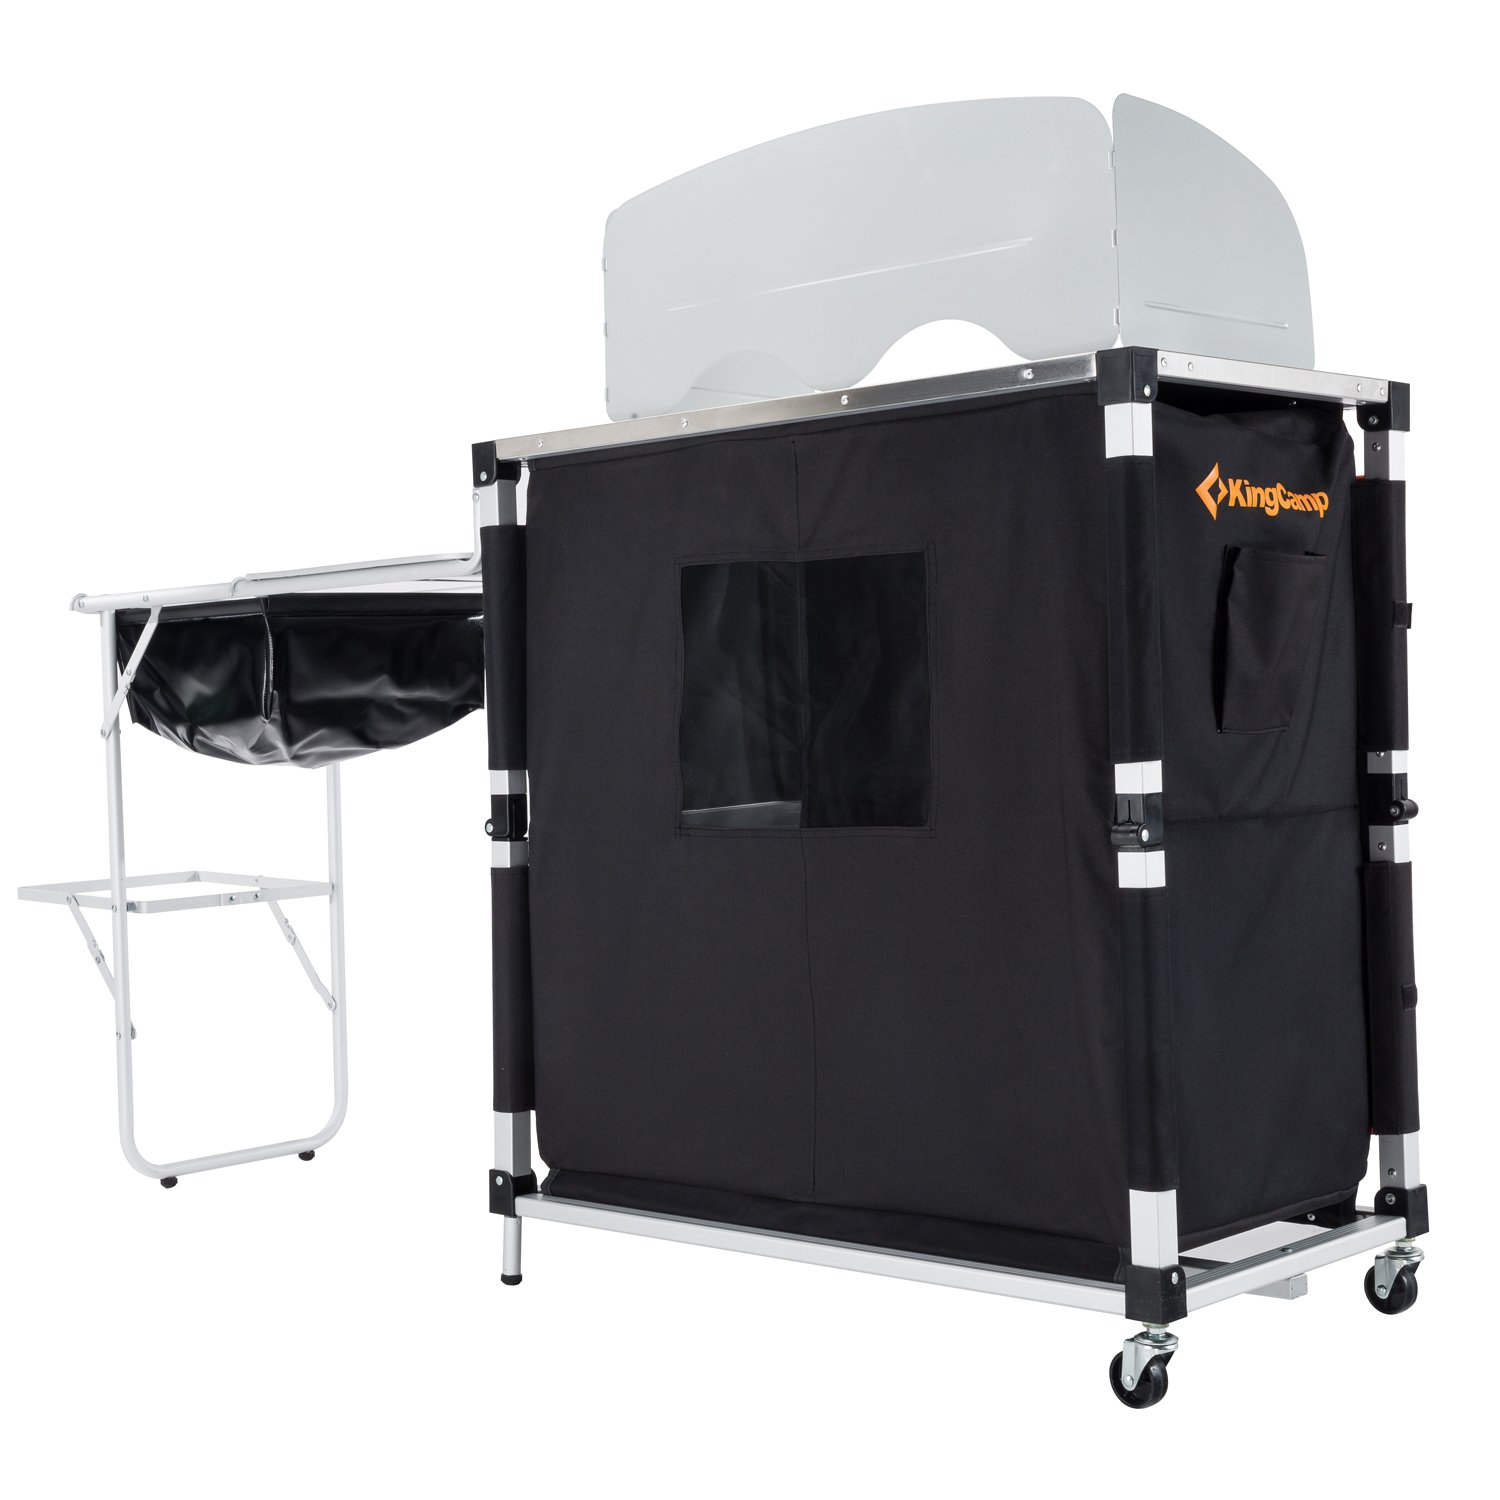 KingCamp Portable Light Multifunctional Camping Kitchen Cooking Table with Wheels Locker Sink by KingCamp (Image #2)